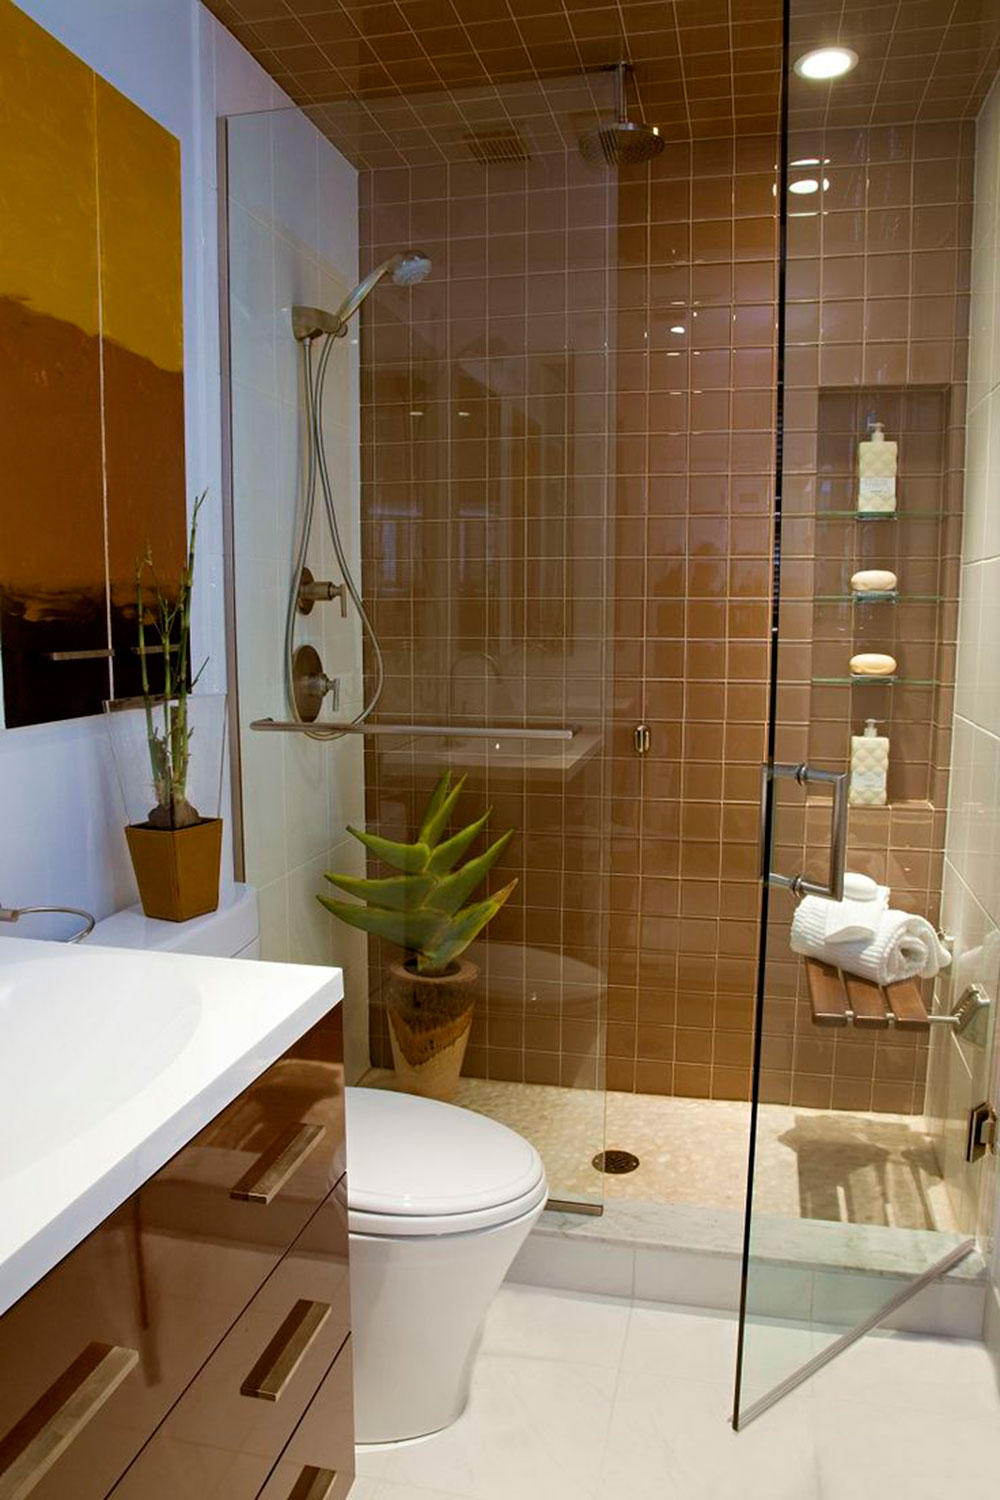 How-to-Remodel-a-Smaller-Bathroom-to-a-Luxurious-Haven-3 How to Remodel a Smaller Bathroom to a Luxurious Haven